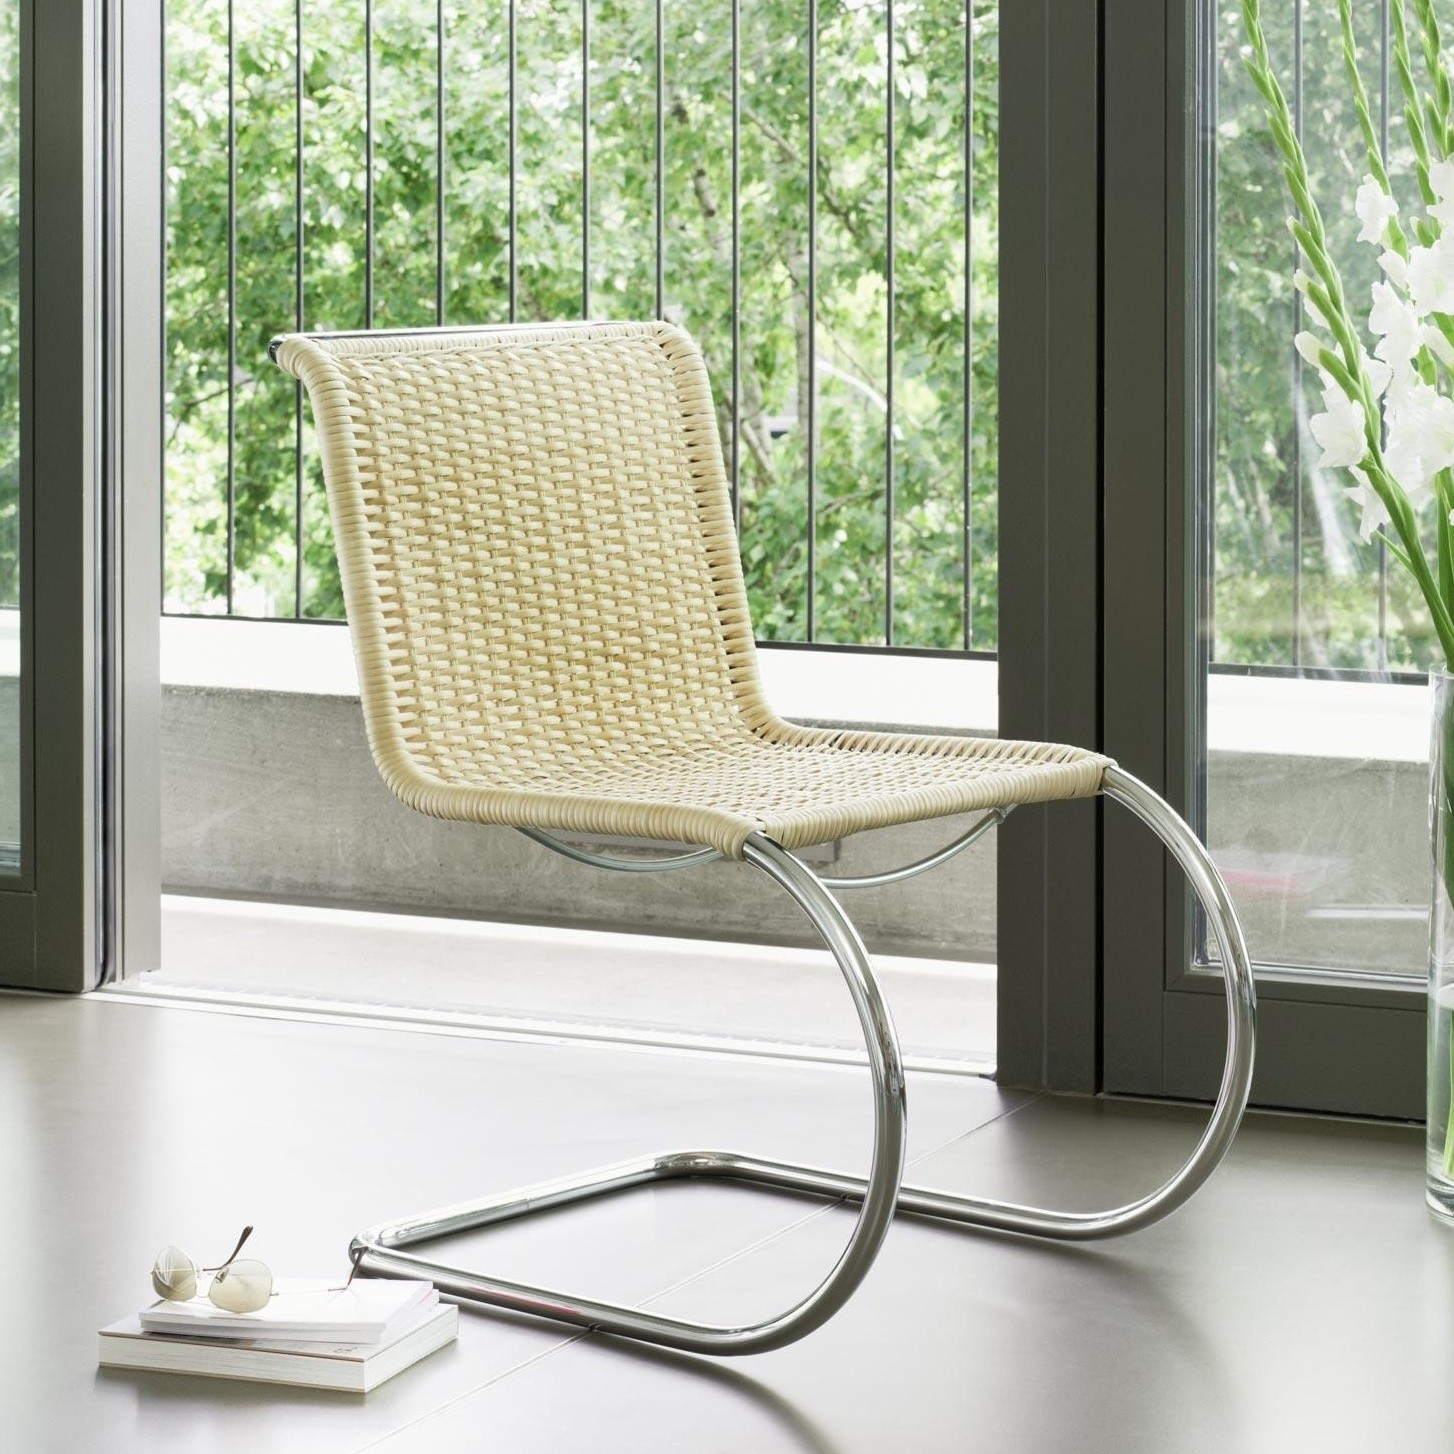 Thonet S 533 R Cantilever Chair Ambientedirect